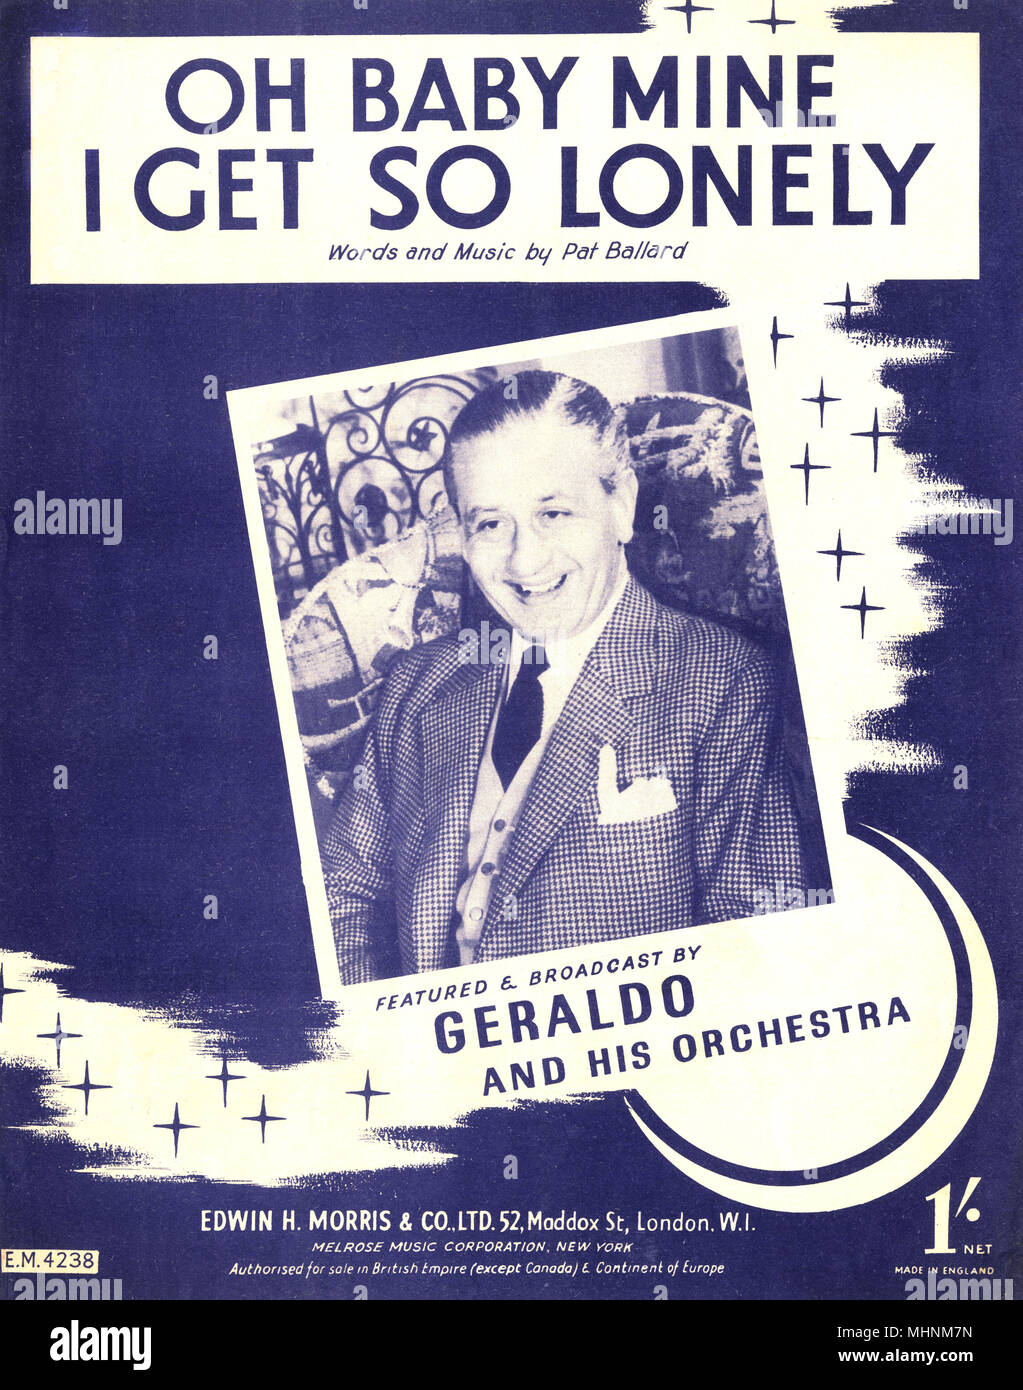 'Oh Baby mine I get so lonely' - Music Sheet Cover, words and music by Pat Ballard, featured and broadcast by Geraldo and his orchestra. An illustration of stars an a photo of Gerlado in the middle.     Date: circa 1940 Stock Photo